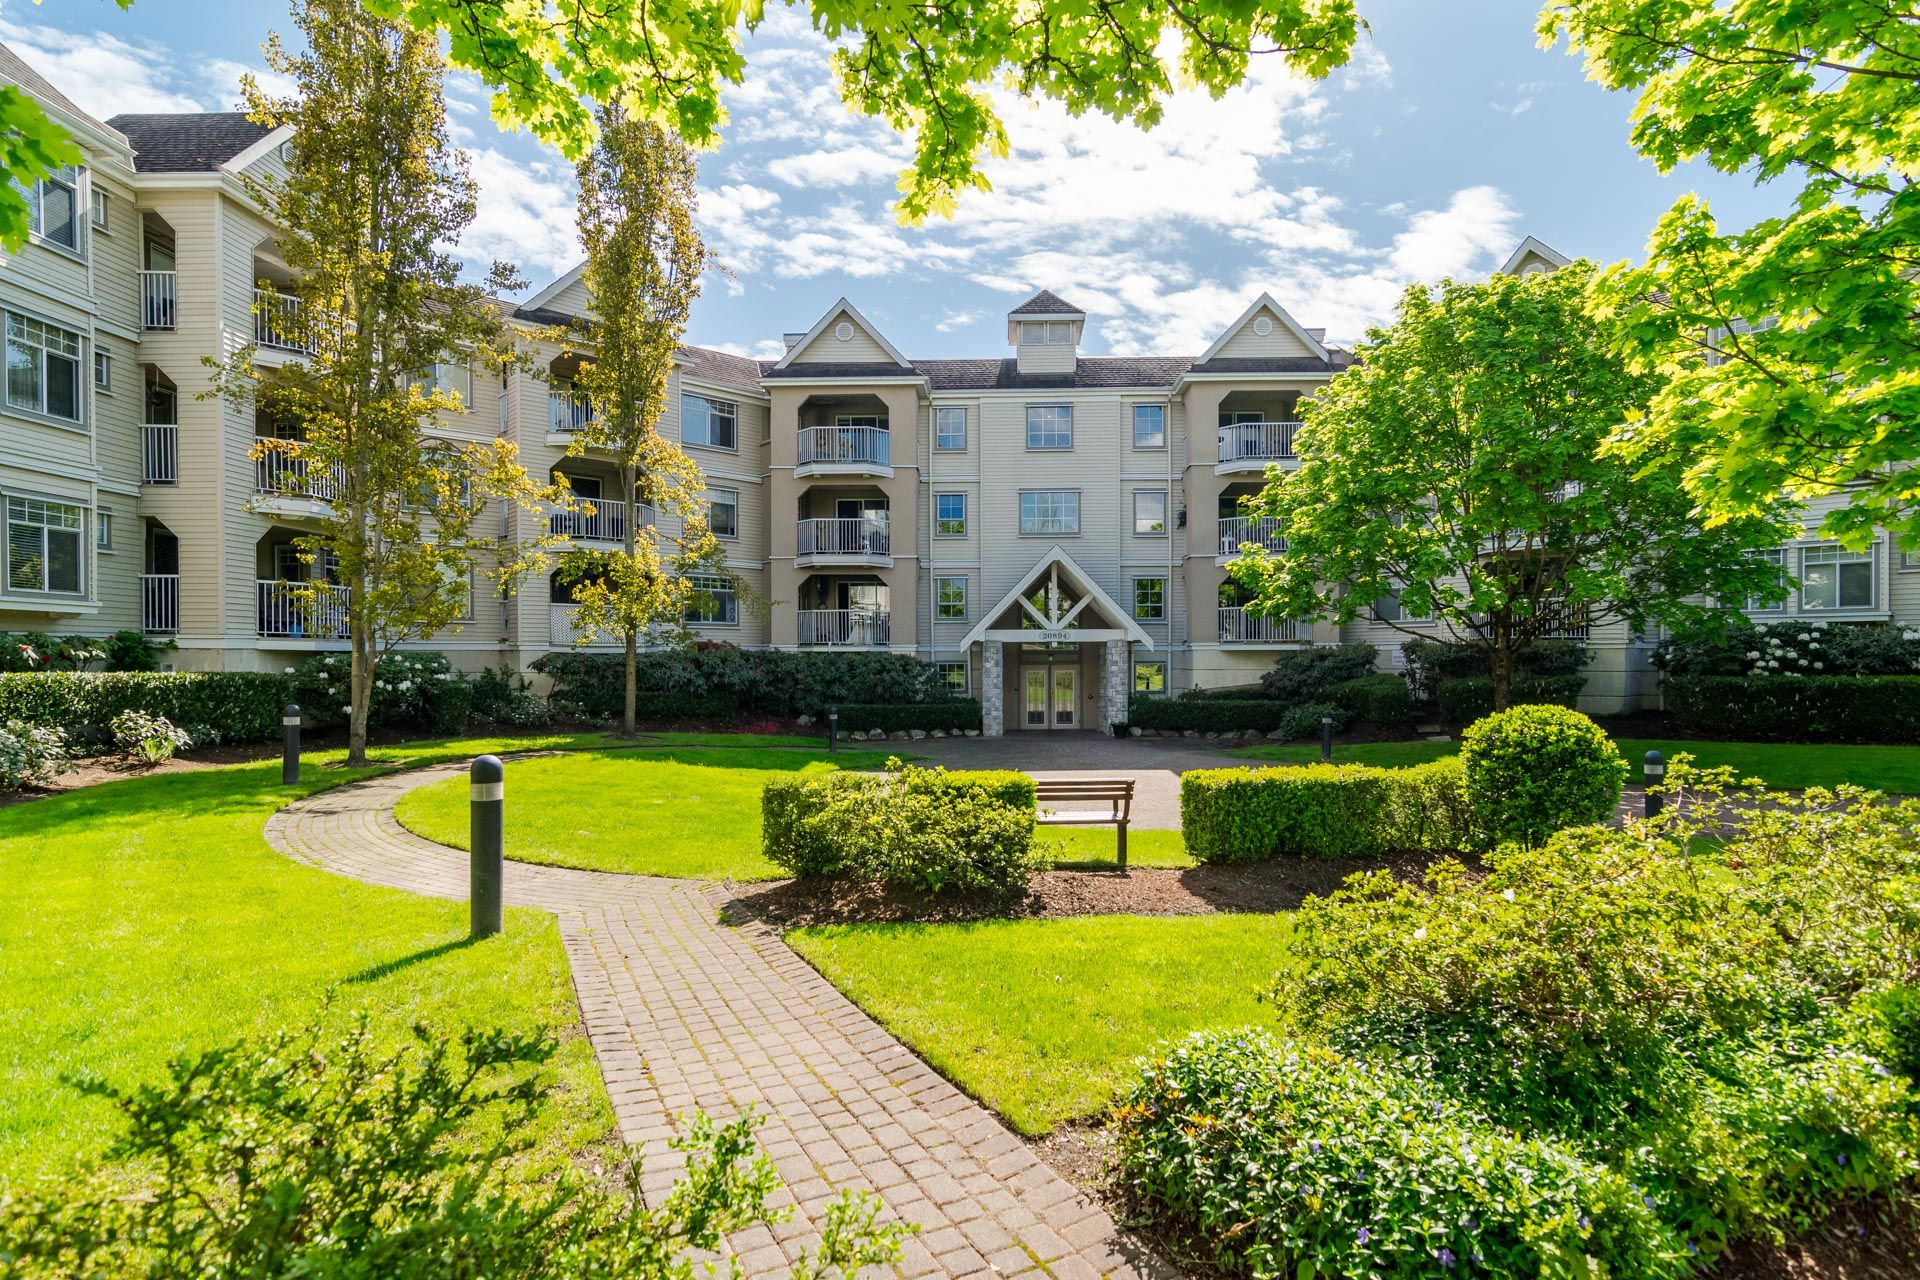 Main Photo: 106-20894 57 Ave in Langley: Langley City Condo for sale